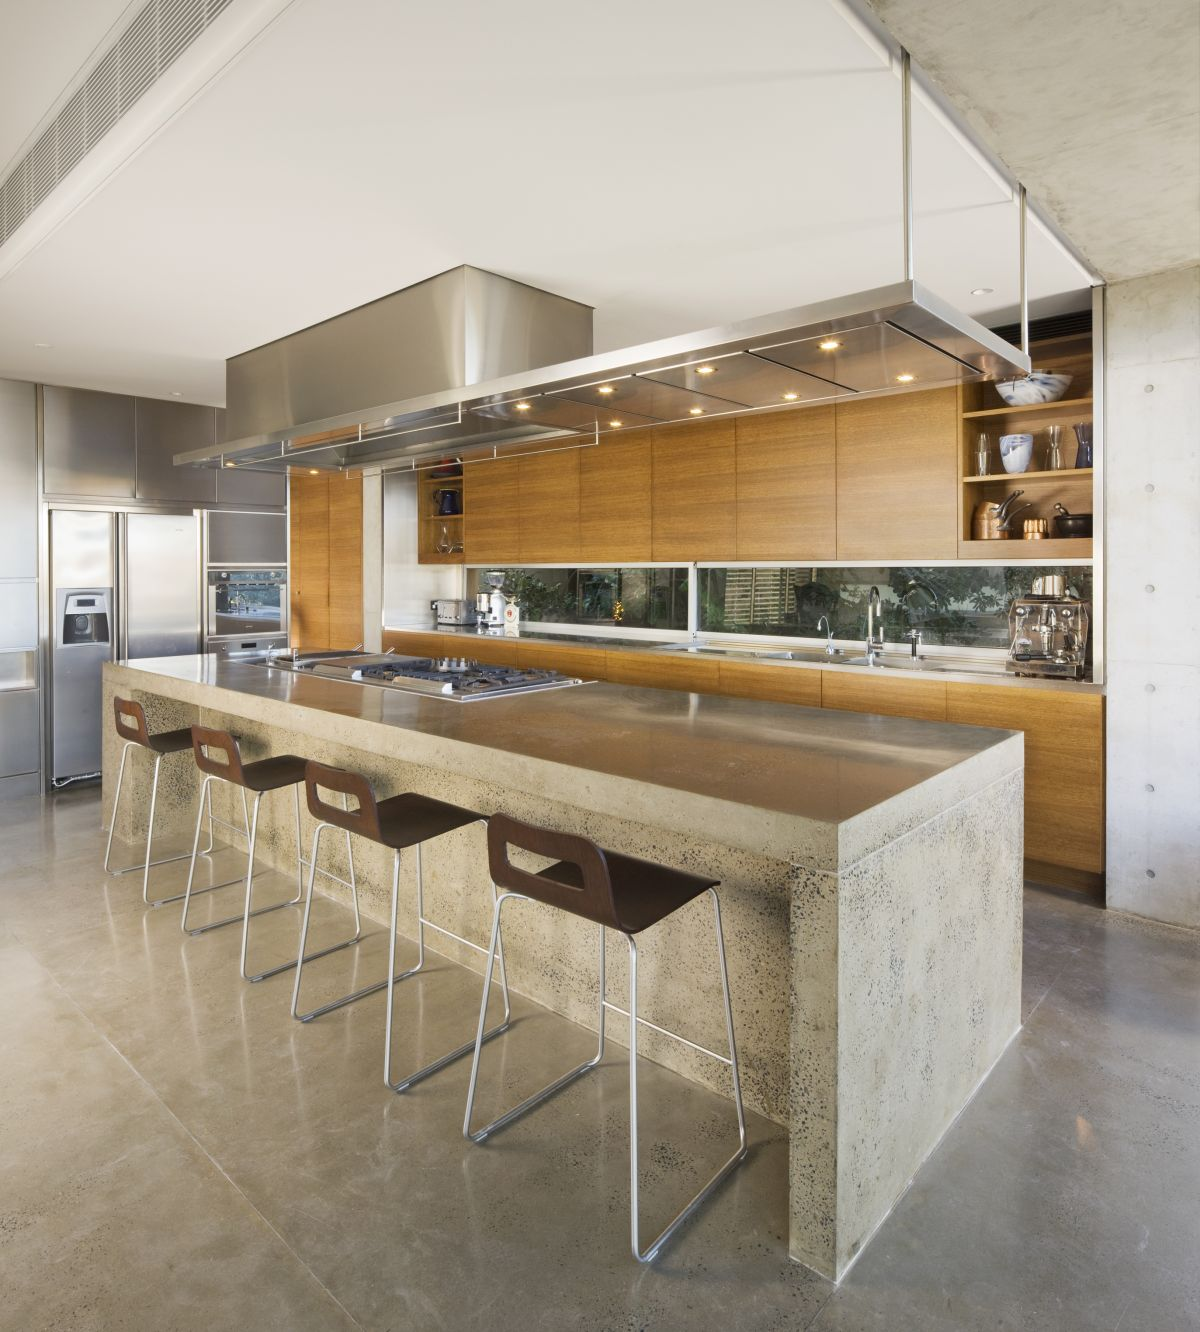 design kitchen modern simply inspiring 10 wonderful kitchen design lines that 503